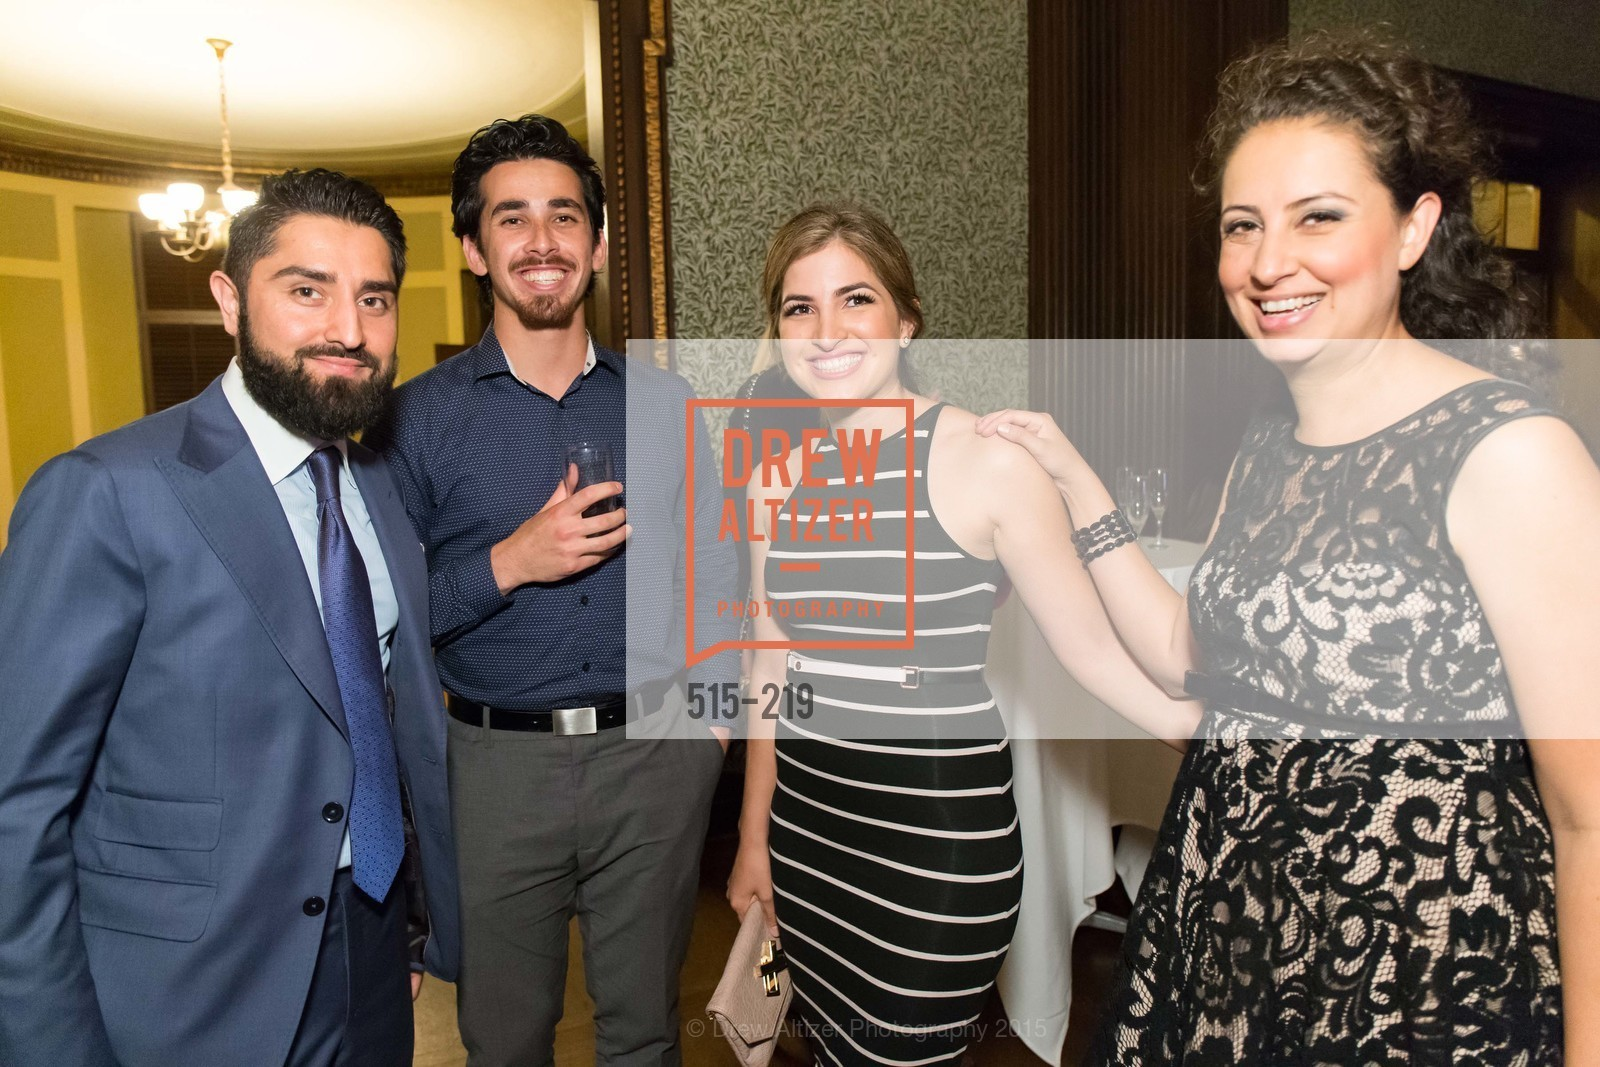 Roh Habibi, Omar Kohgadai, Shugufa Habibi, Fatima Lavour, Champagne Reception & Screening of Million Dollar Listing San Francisco, University Club. 800 Powell St, August 5th, 2015,Drew Altizer, Drew Altizer Photography, full-service event agency, private events, San Francisco photographer, photographer California